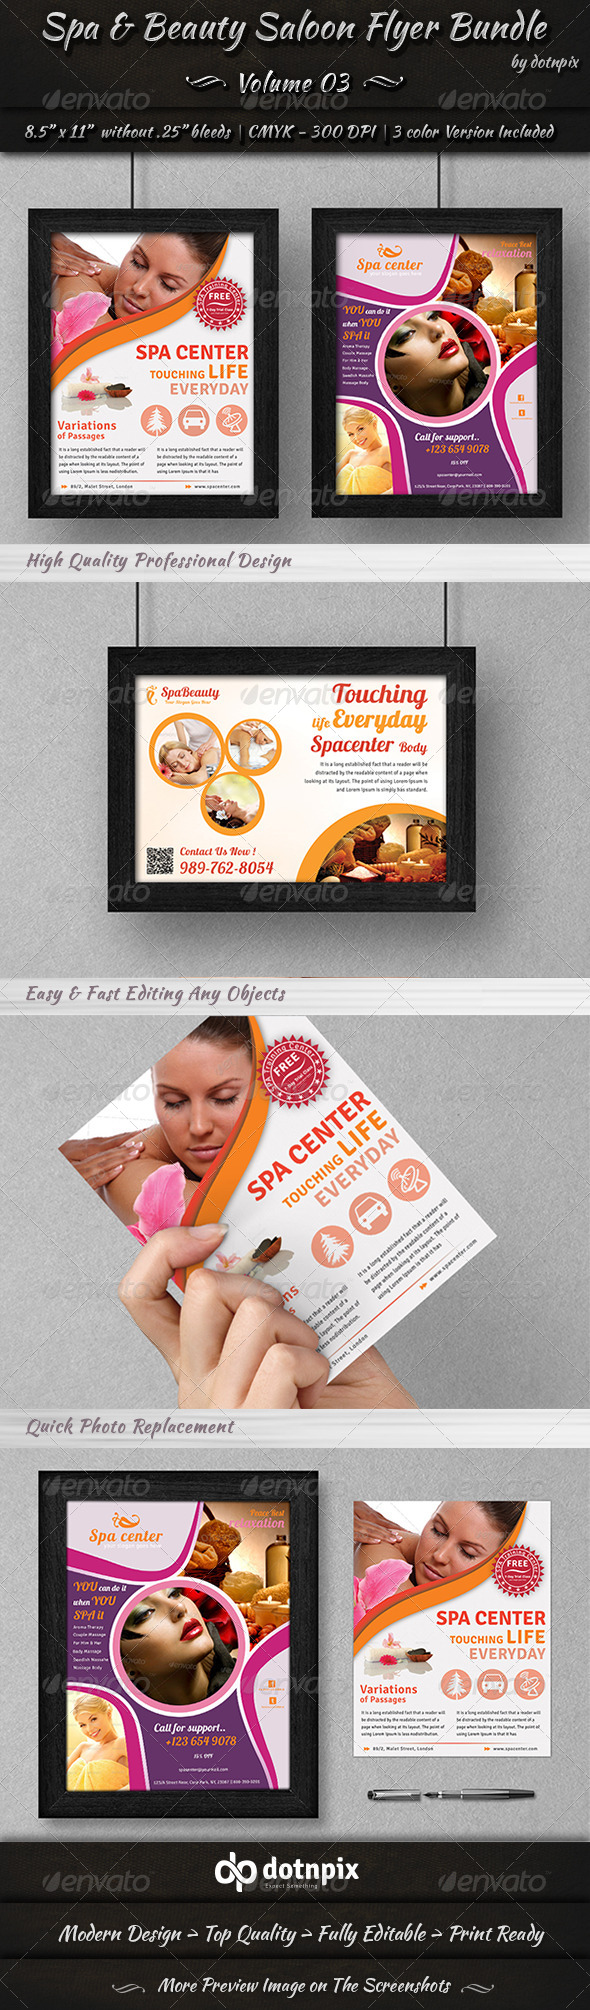 Spa & Beauty Saloon Flyer Bundle | Volume 3 - Corporate Flyers